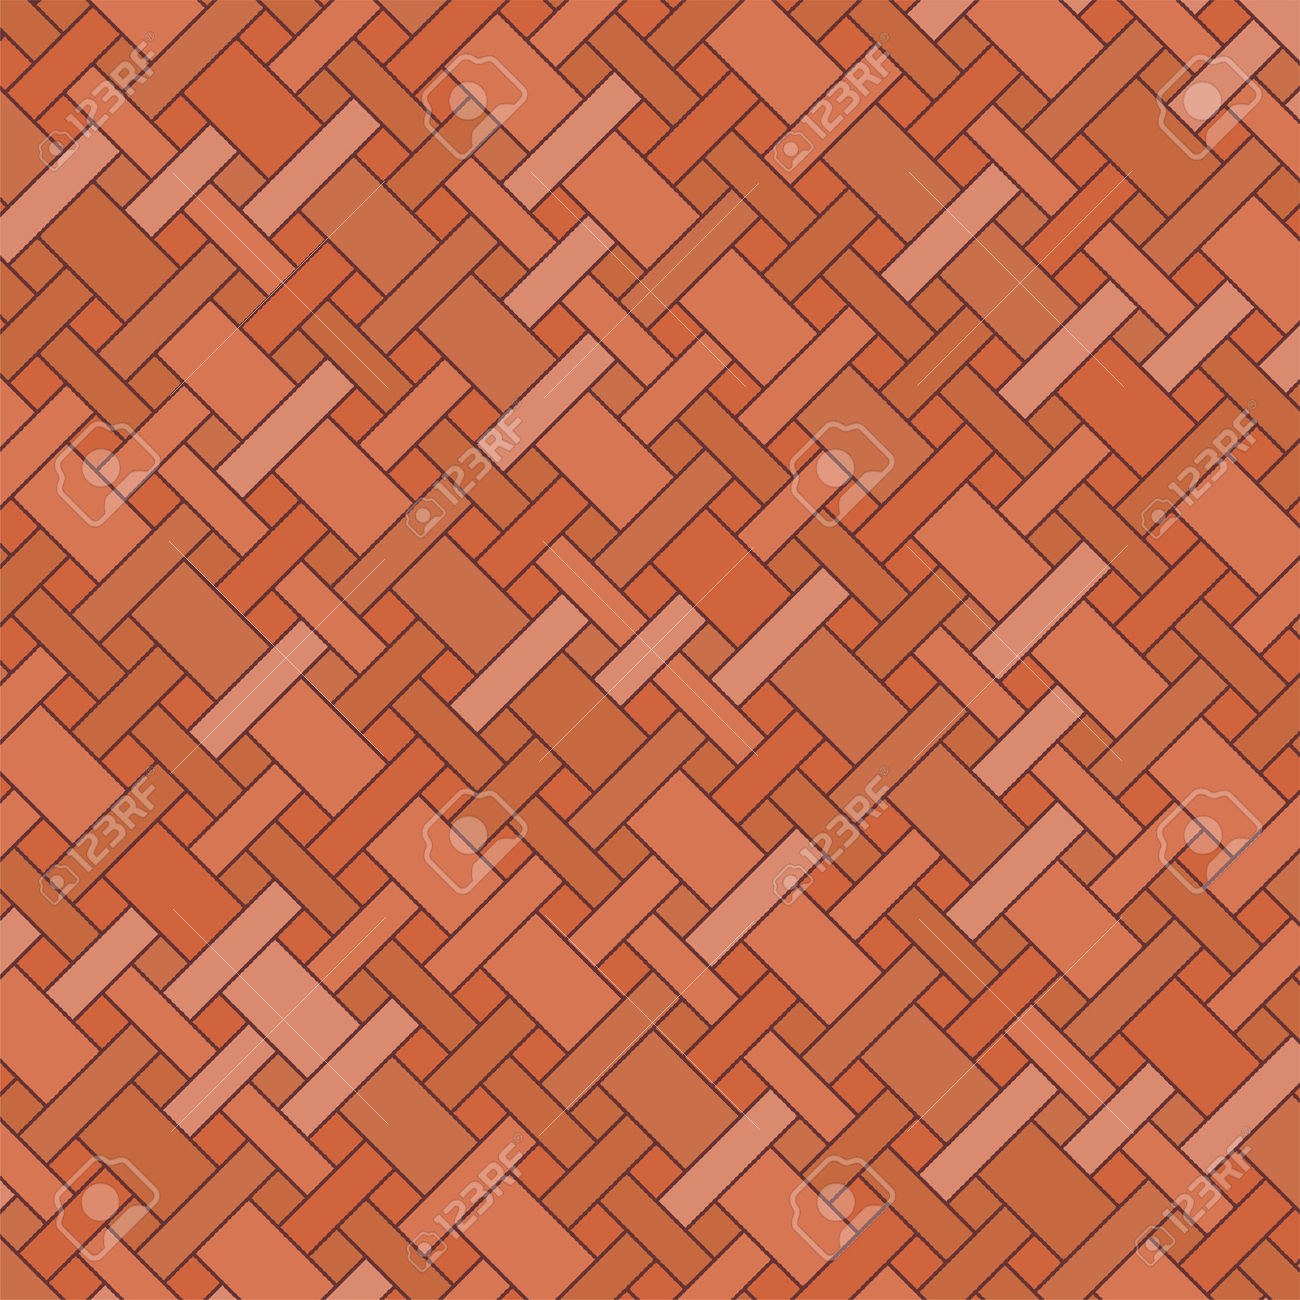 Brick Floor With Different Earth Color Tones Royalty Free Cliparts